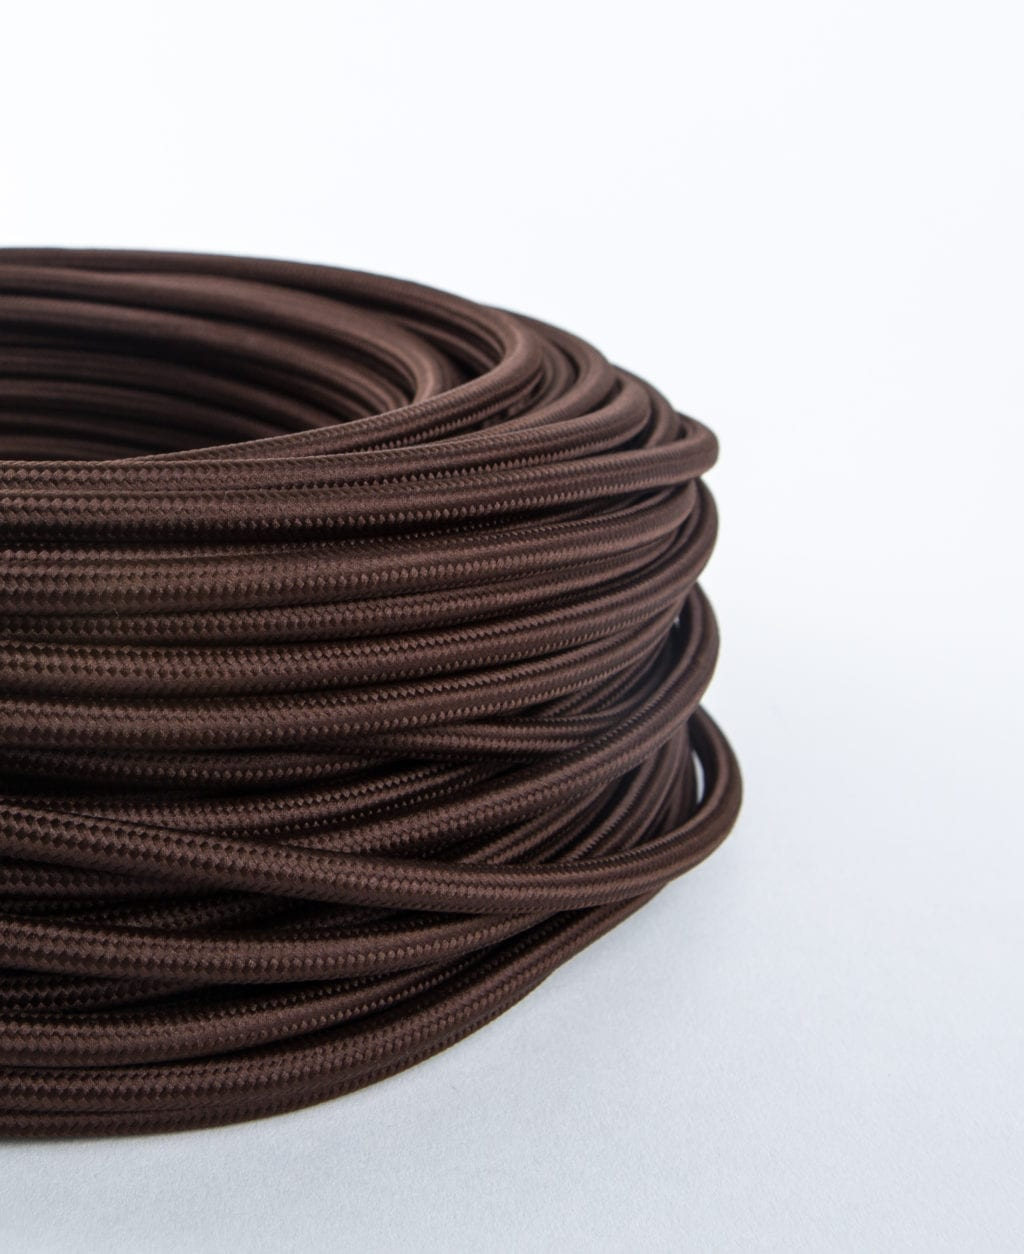 closeup of brown fabric cable coil against white background